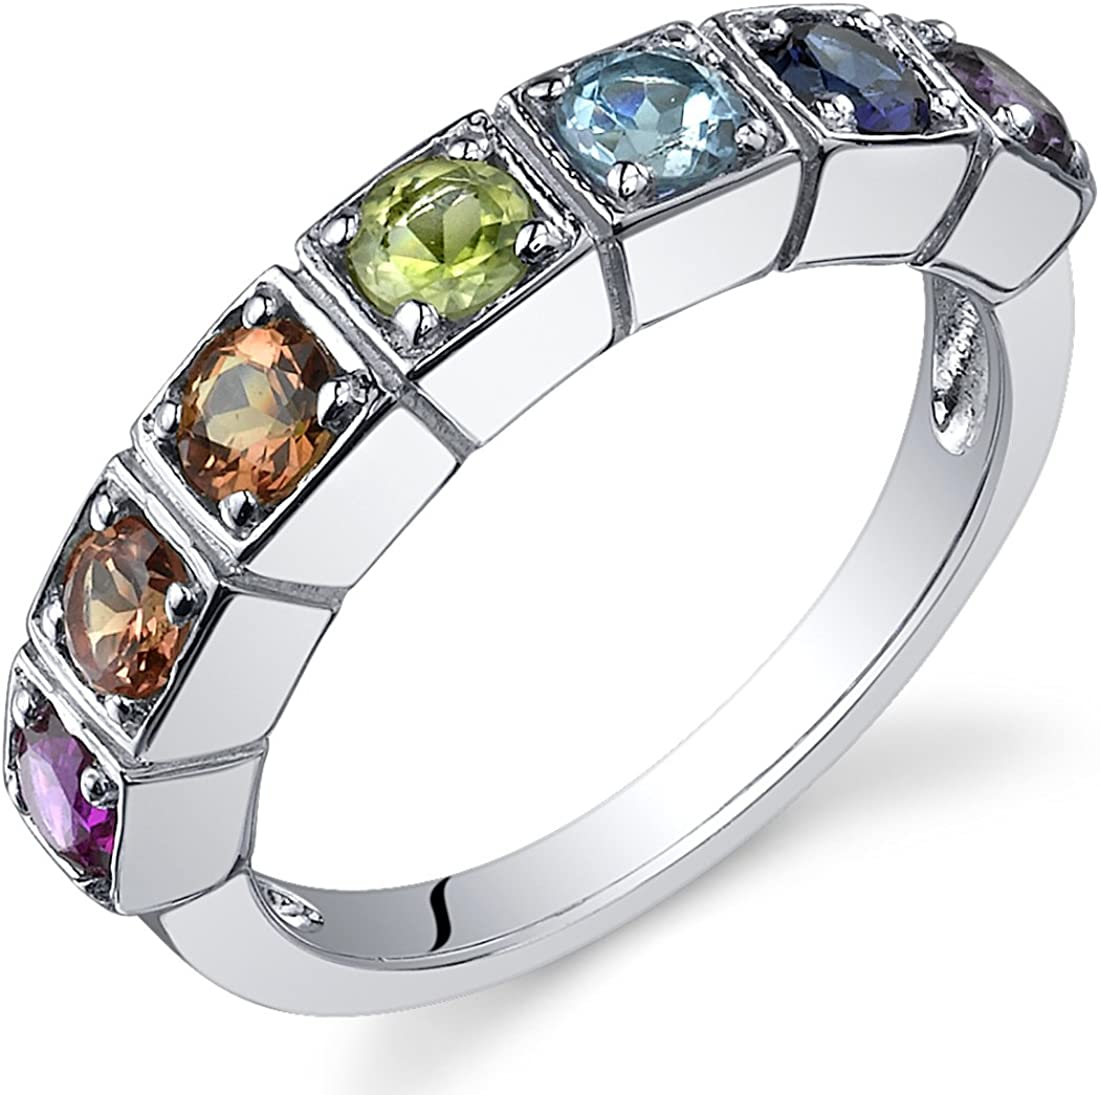 Mens Sapphire Ring with Side Diamonds Multi-colors 925 Sterling Silver Open End